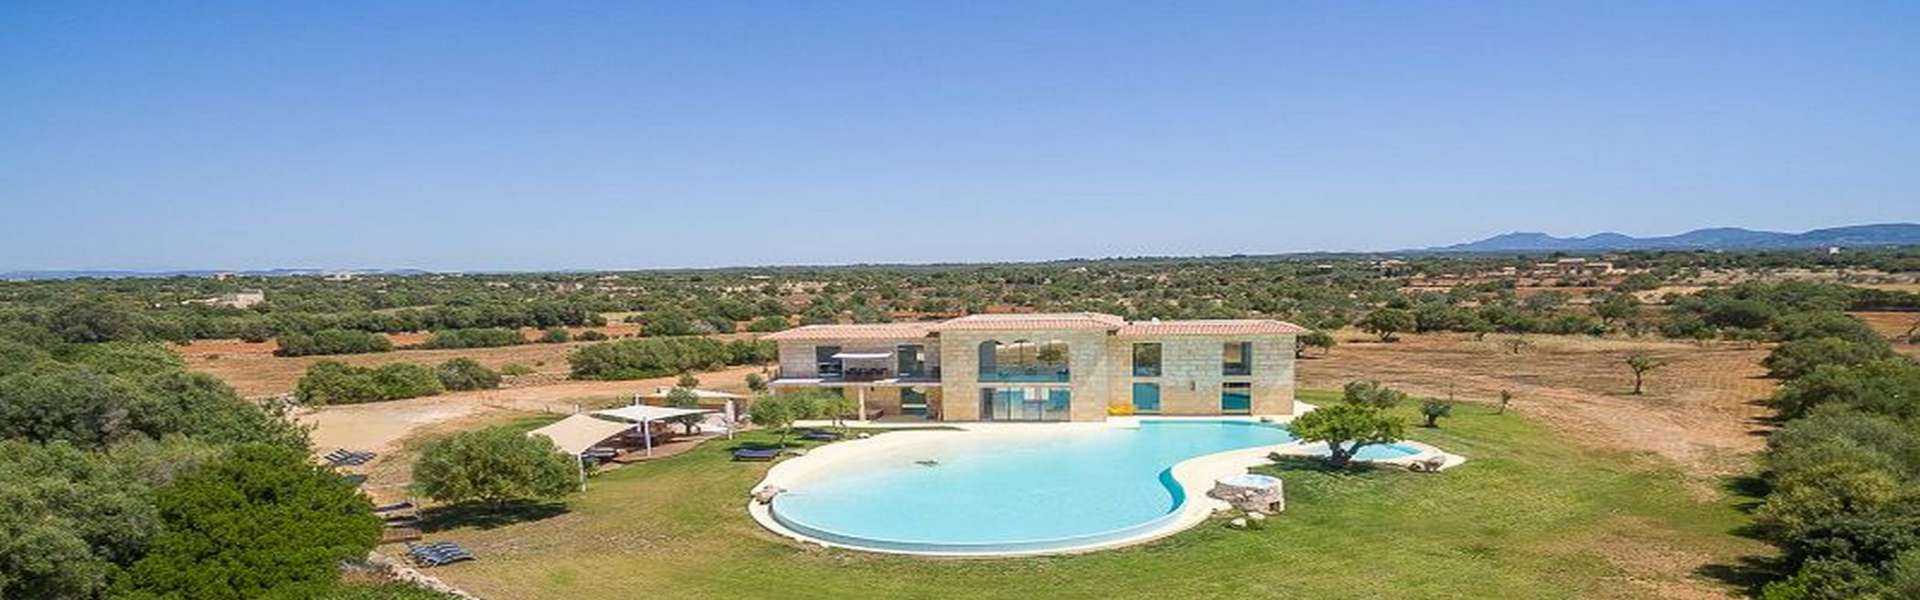 Ses Salines - Stylish country house with sea view for sale